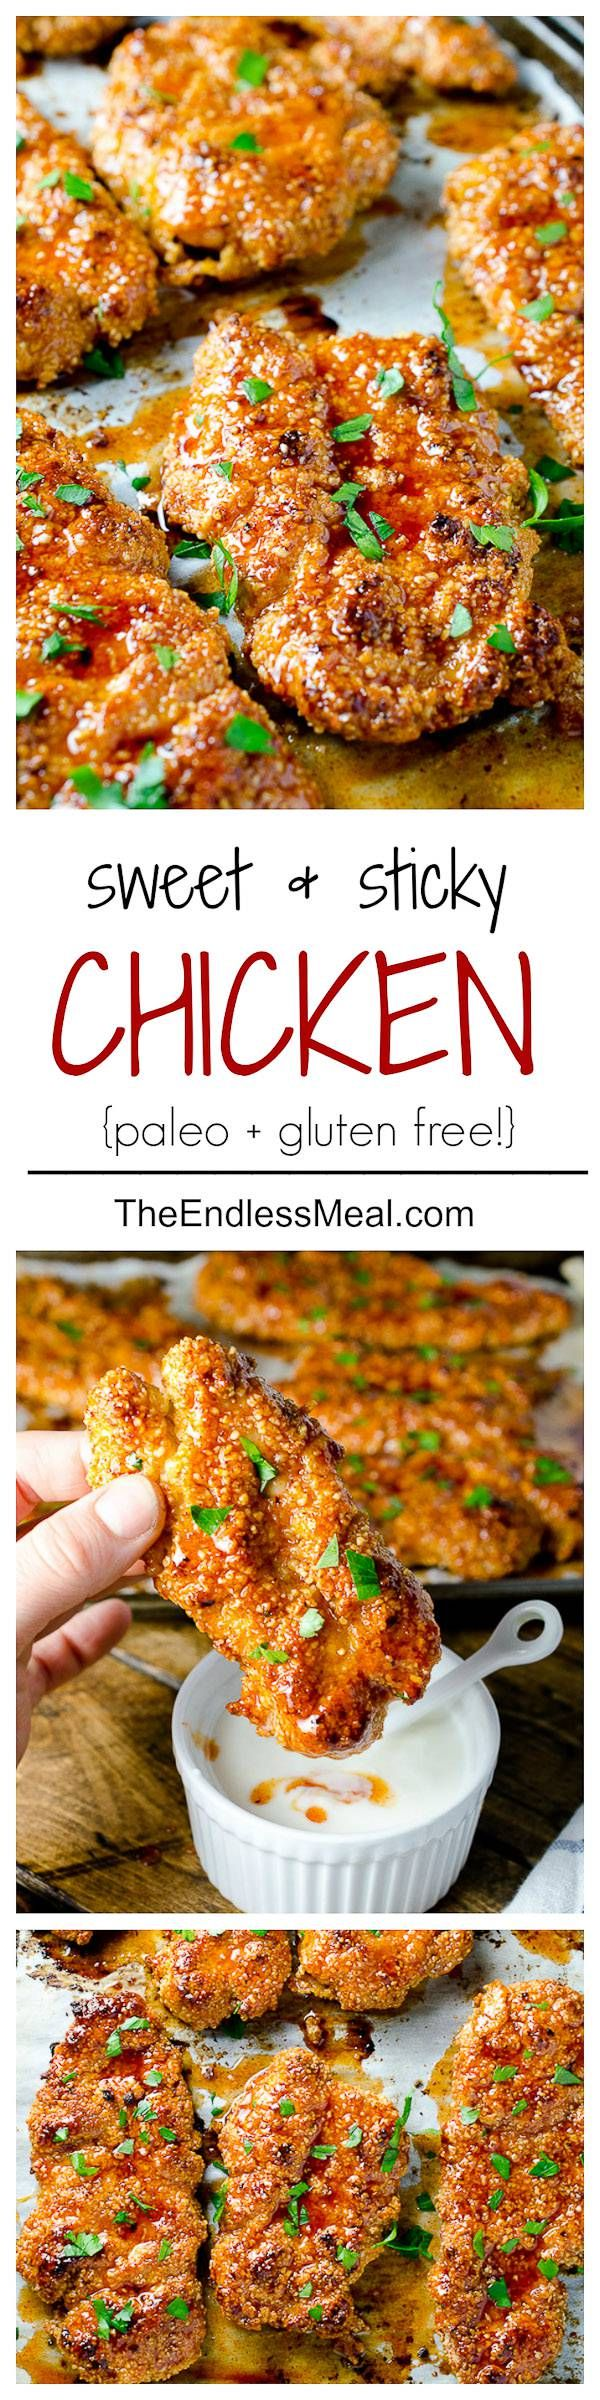 Sweet and Spicy Paleo Chicken Bites  May modify when I try this to avoid buying almond meal. Try flour and panko maybe?